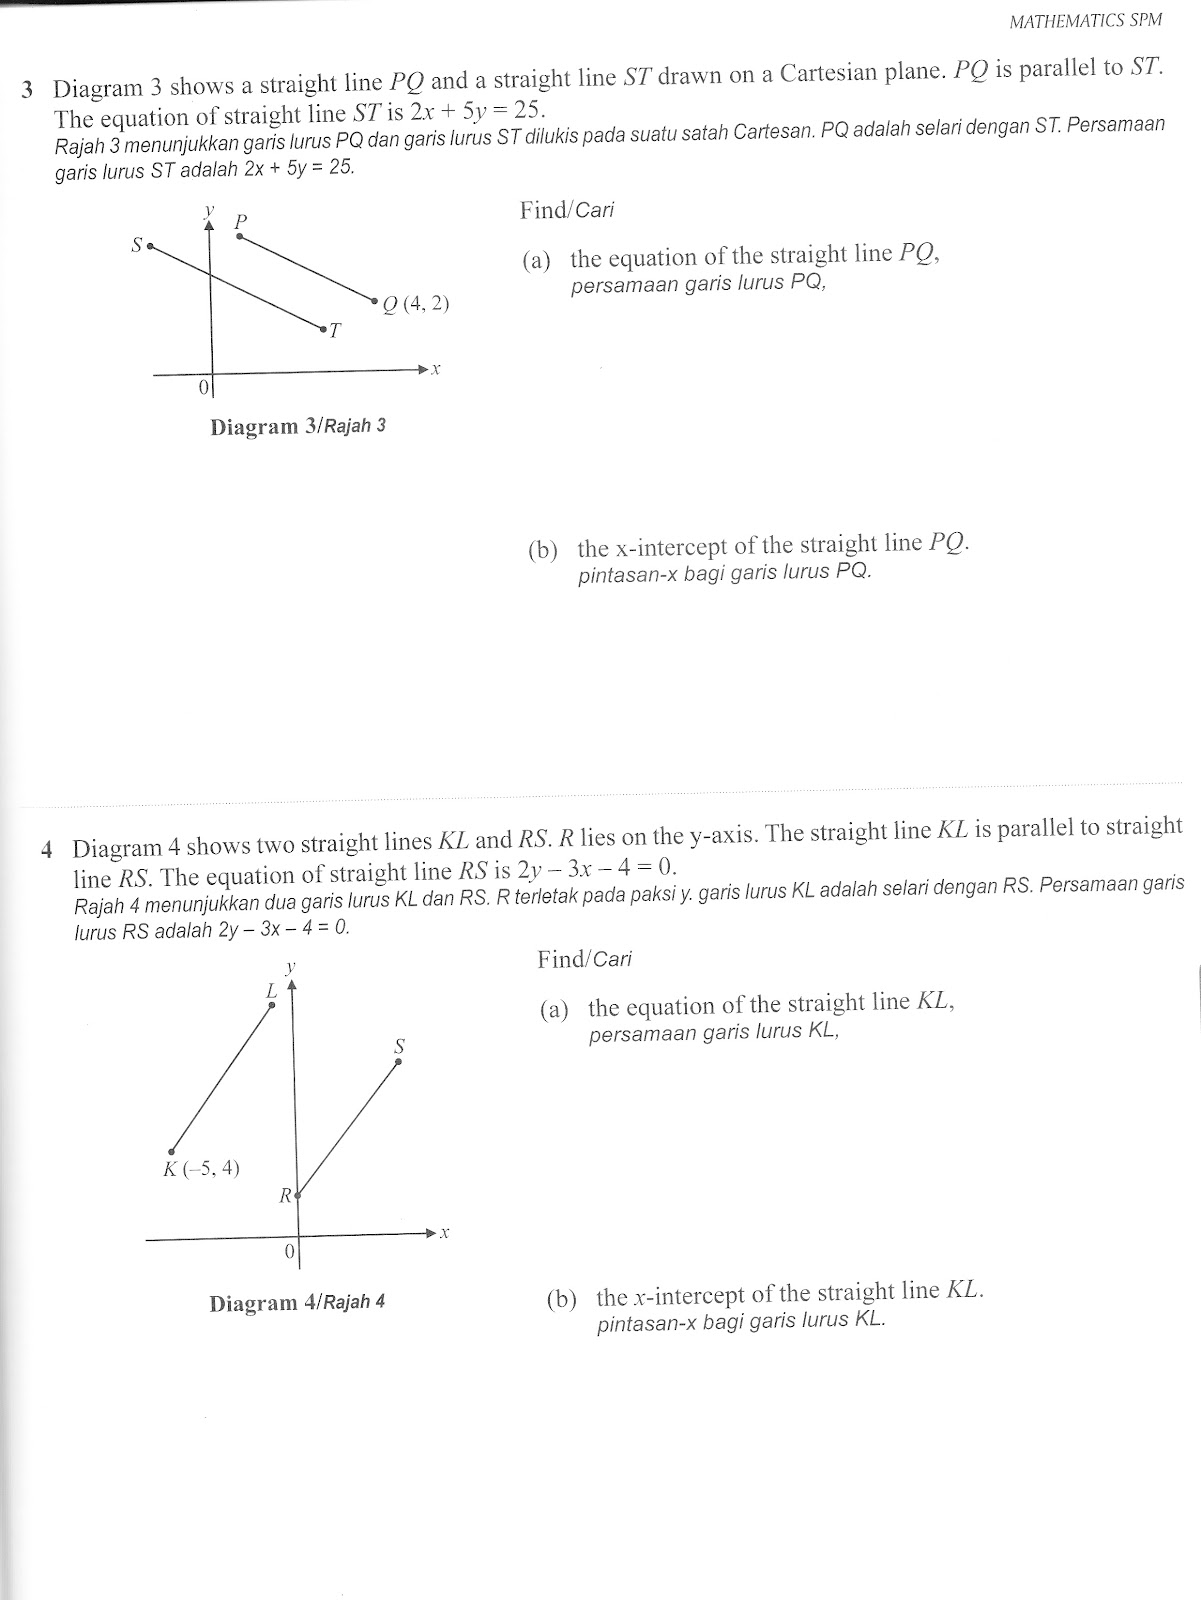 Dess maths 2012 as usual answers will be given if you ask for it in the comment section below ccuart Gallery